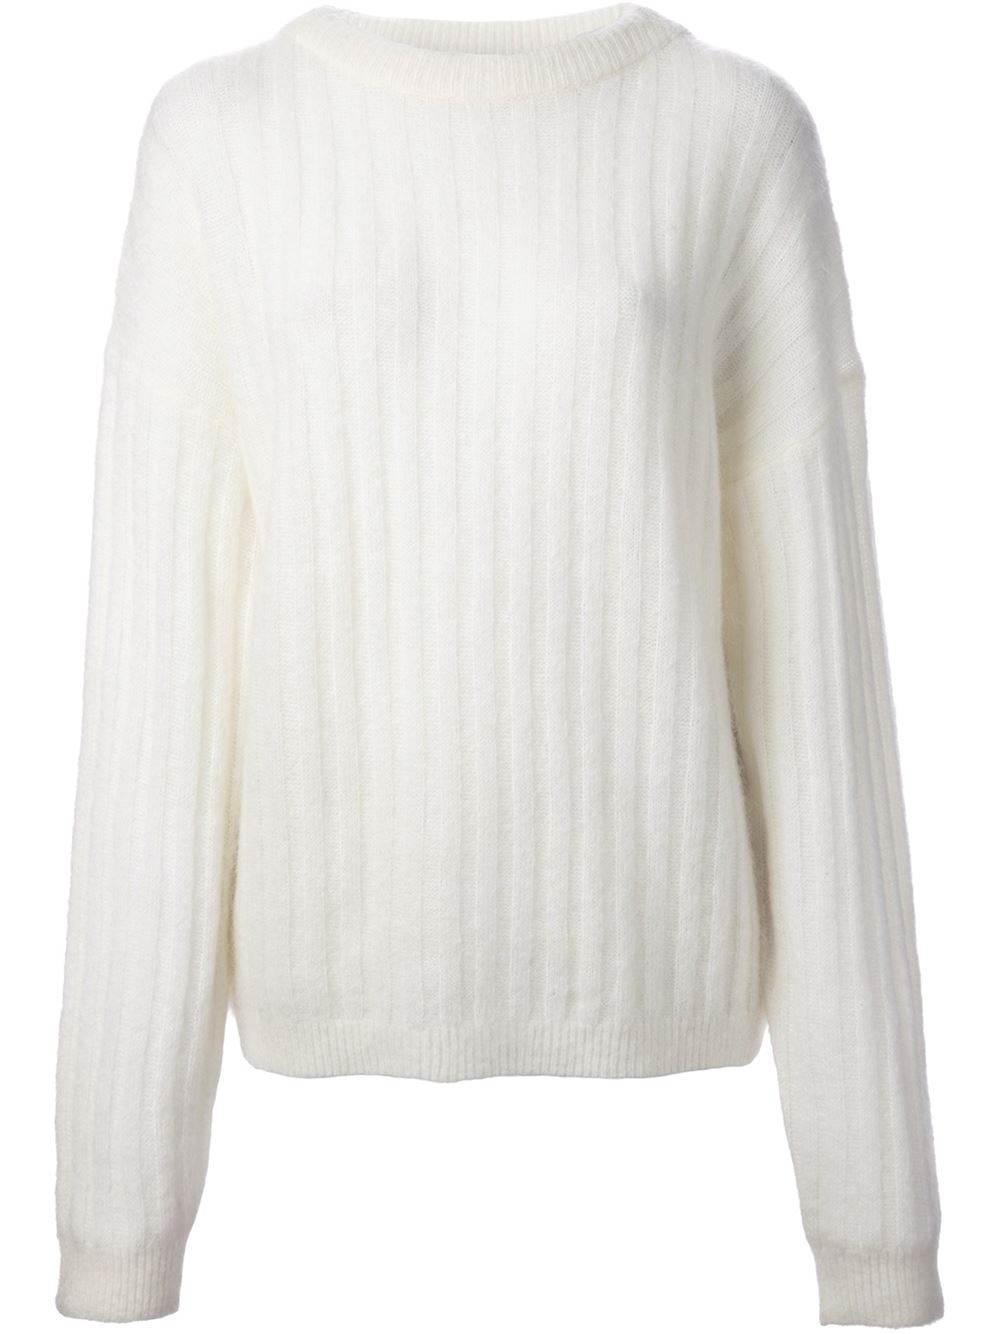 Acne studios Ribbed Sweater in White | Lyst